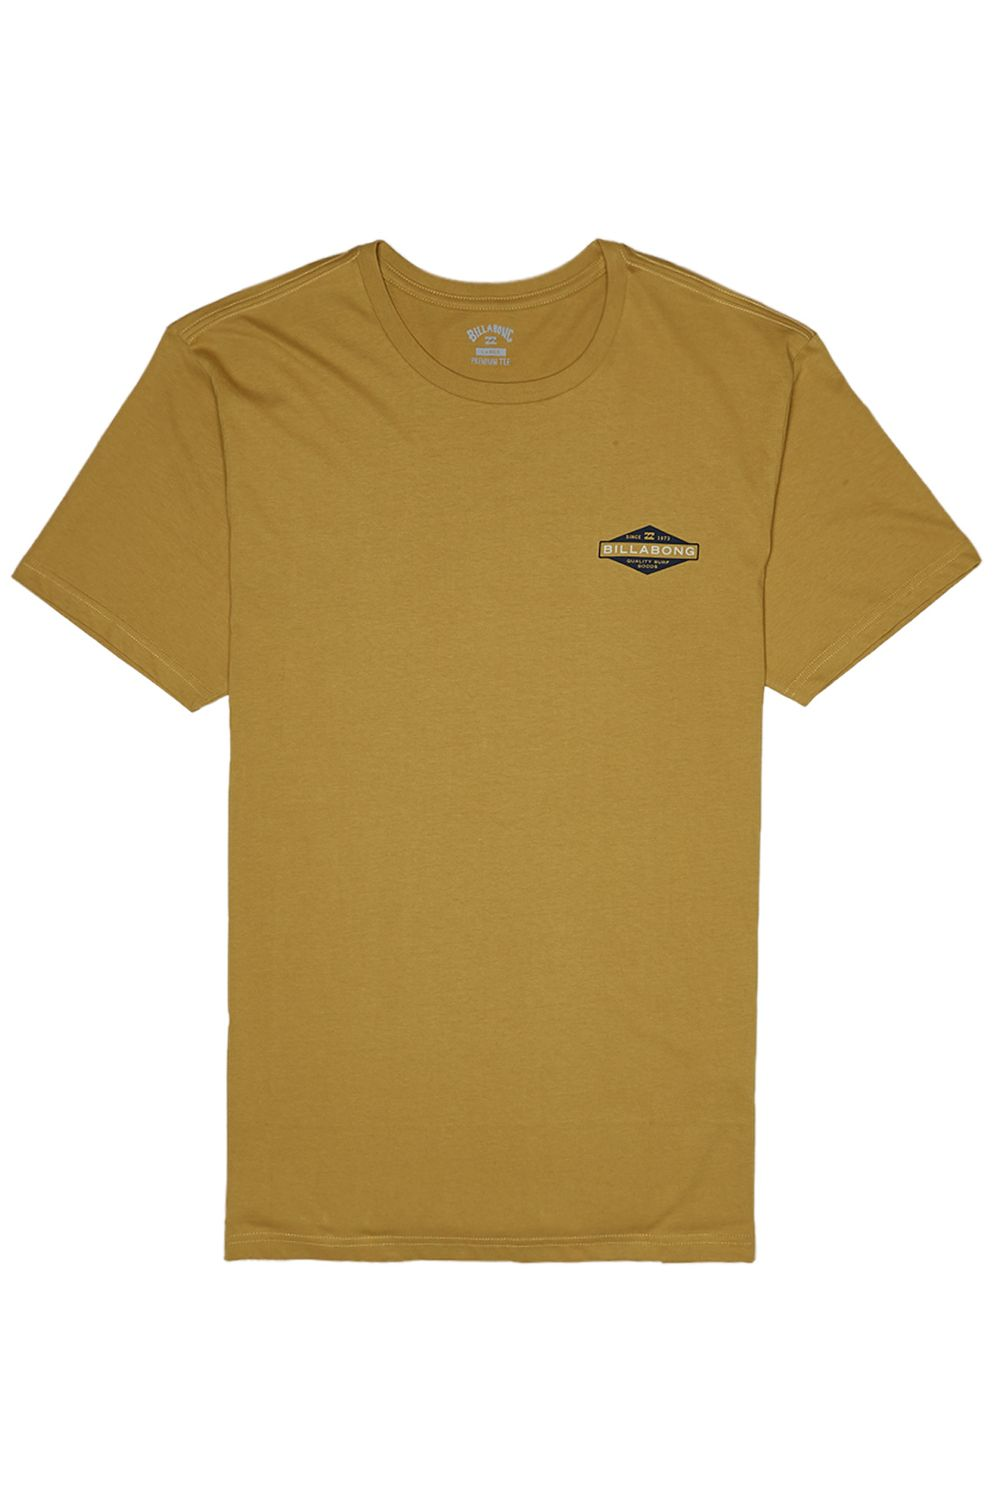 T-Shirt Billabong AUTOSHOP Gold